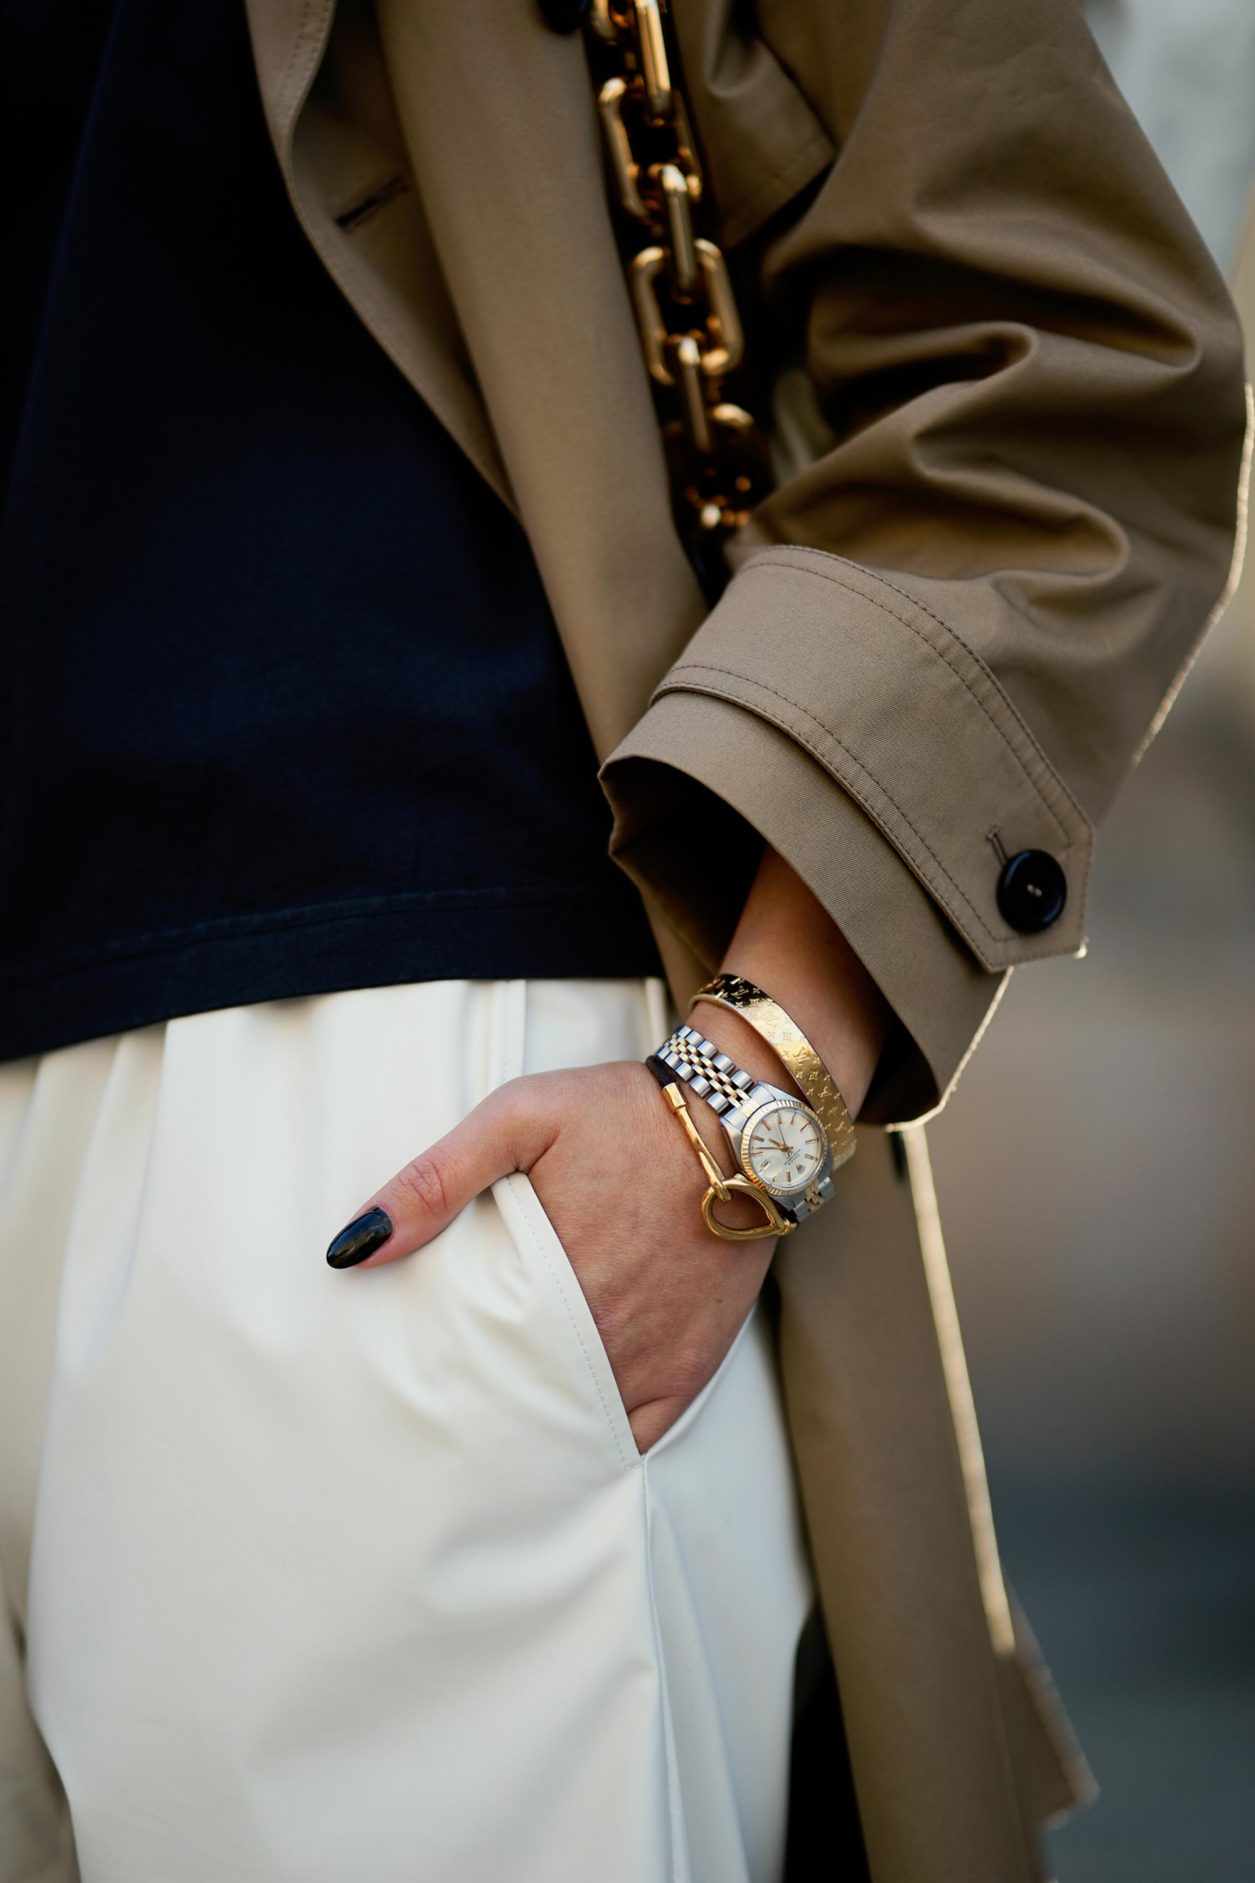 Streetstyle by Masha Sedgwick | Fashion blogger from Berlin, Germany | Accessoires inspiration: Hermes bracelet, vintage Rolex